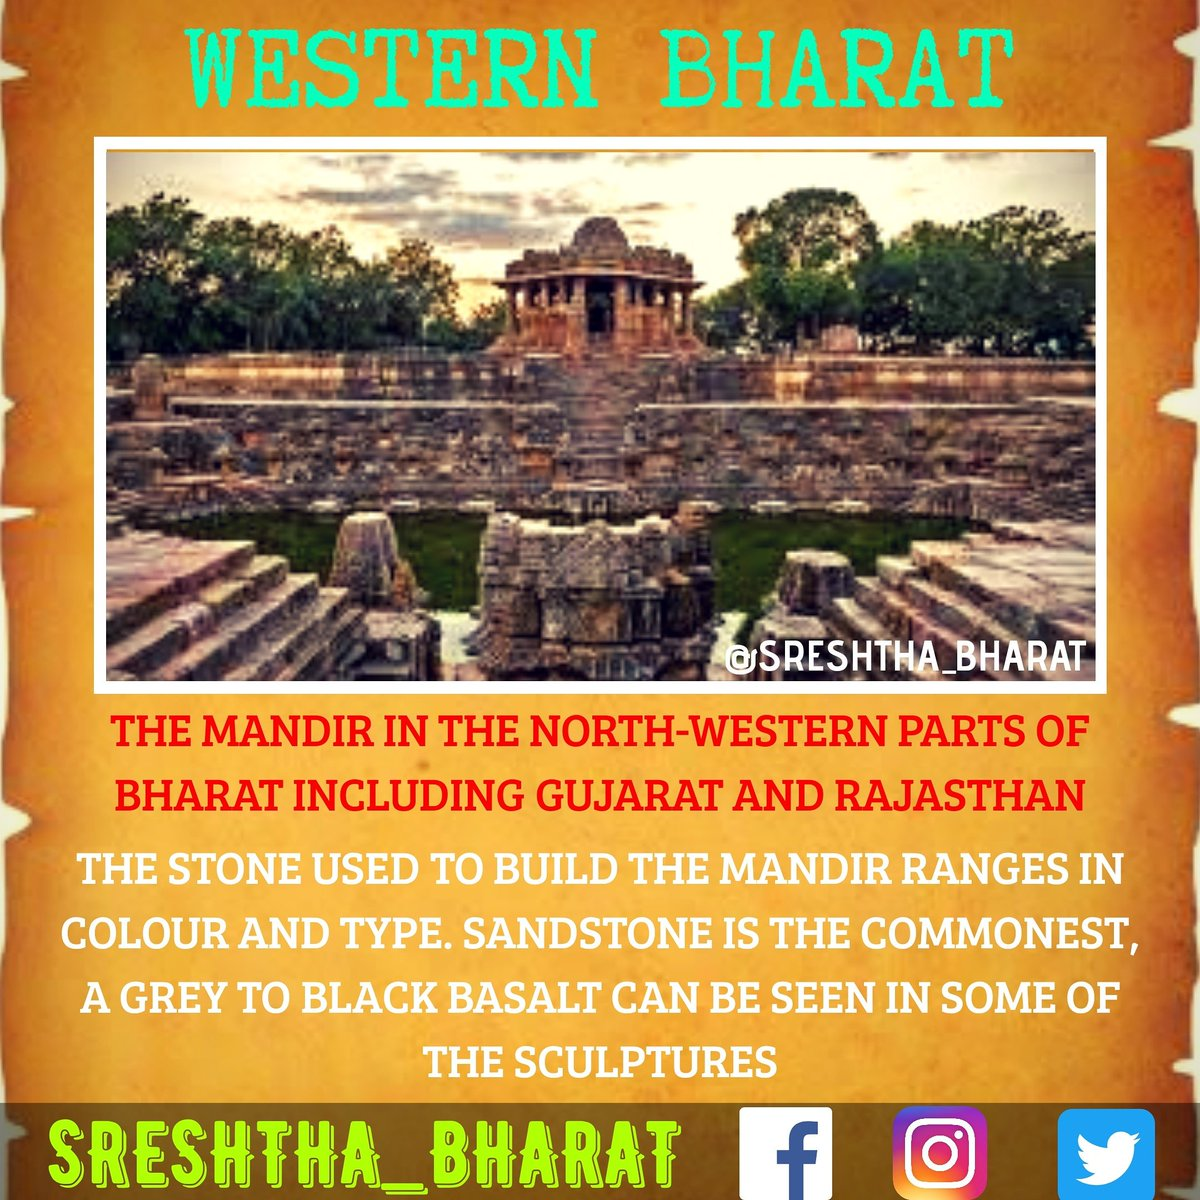 #temple_architecture  We will be getting closer to the Great Temple Architecture of our Sreshtha Bharat  Follow @Sreshthabharat on Facebook | Instagram | Twitter 🙏  #indianculture #indianarchitecture #hinduarchitecture #temple  #worship #templeworship #dravida #mandir #devasthan https://t.co/UNIWA3Ze14